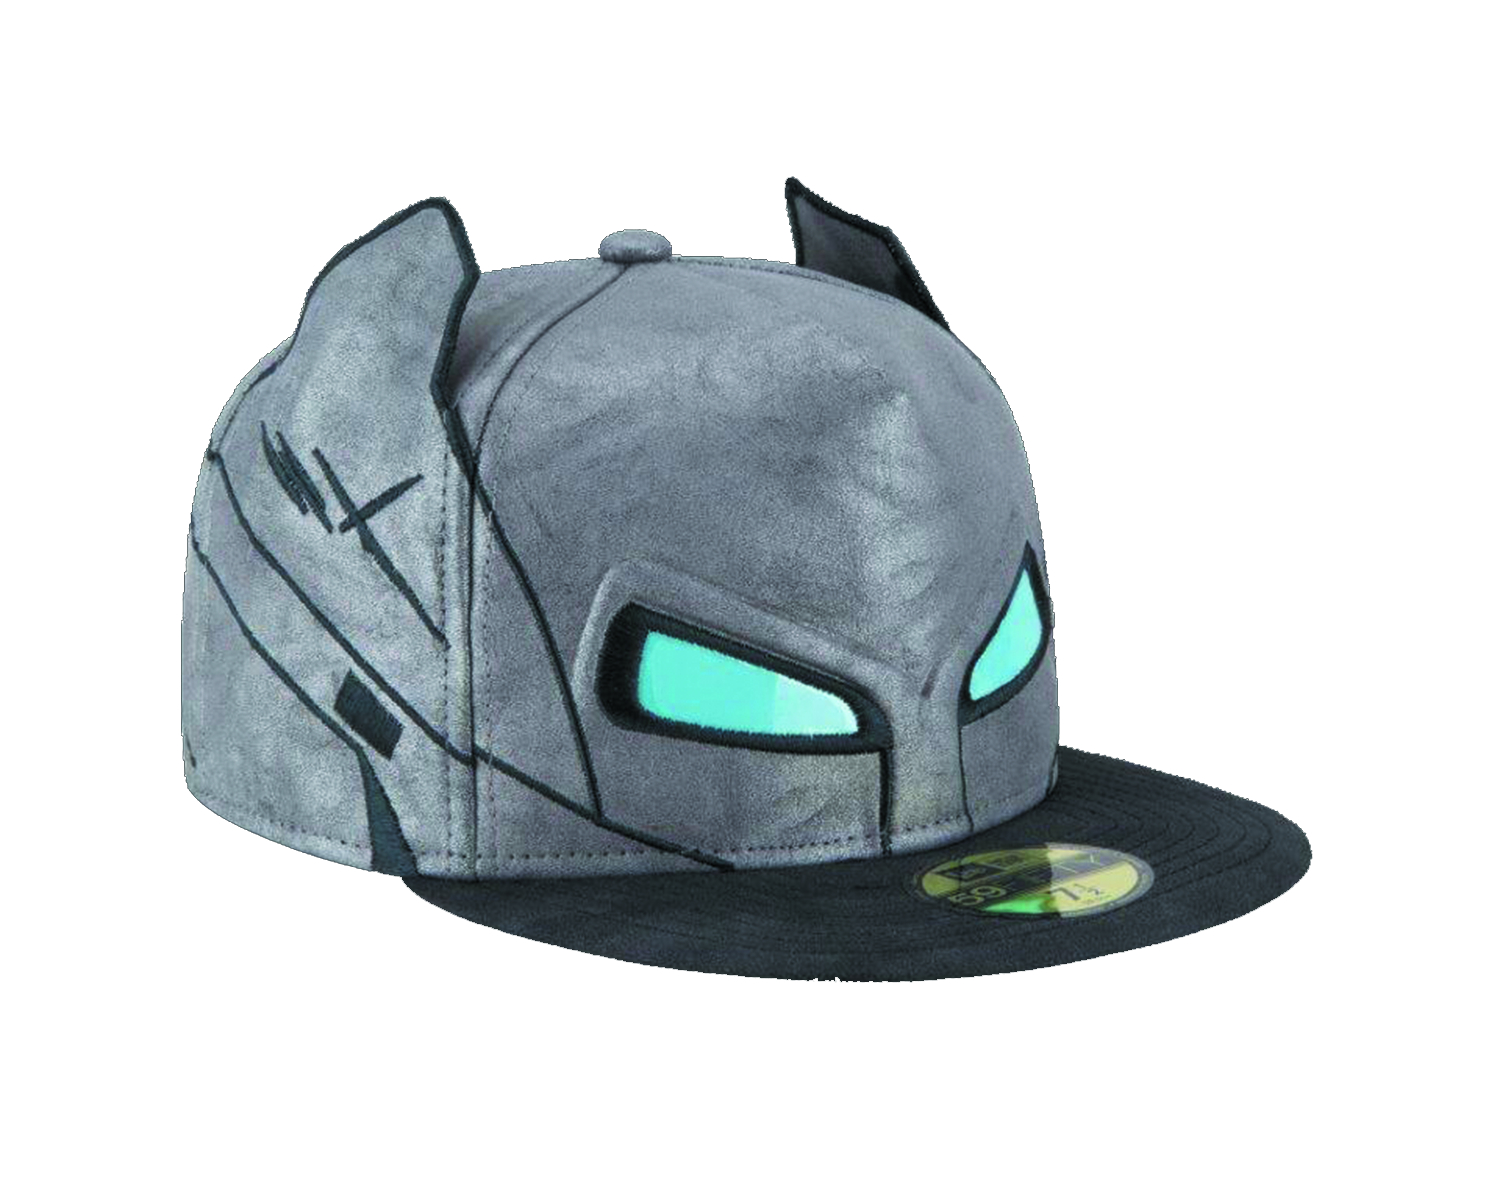 BATMAN V SUPERMAN ARMOR BATMAN HELMET FITTED CAP SZ 7 3/8